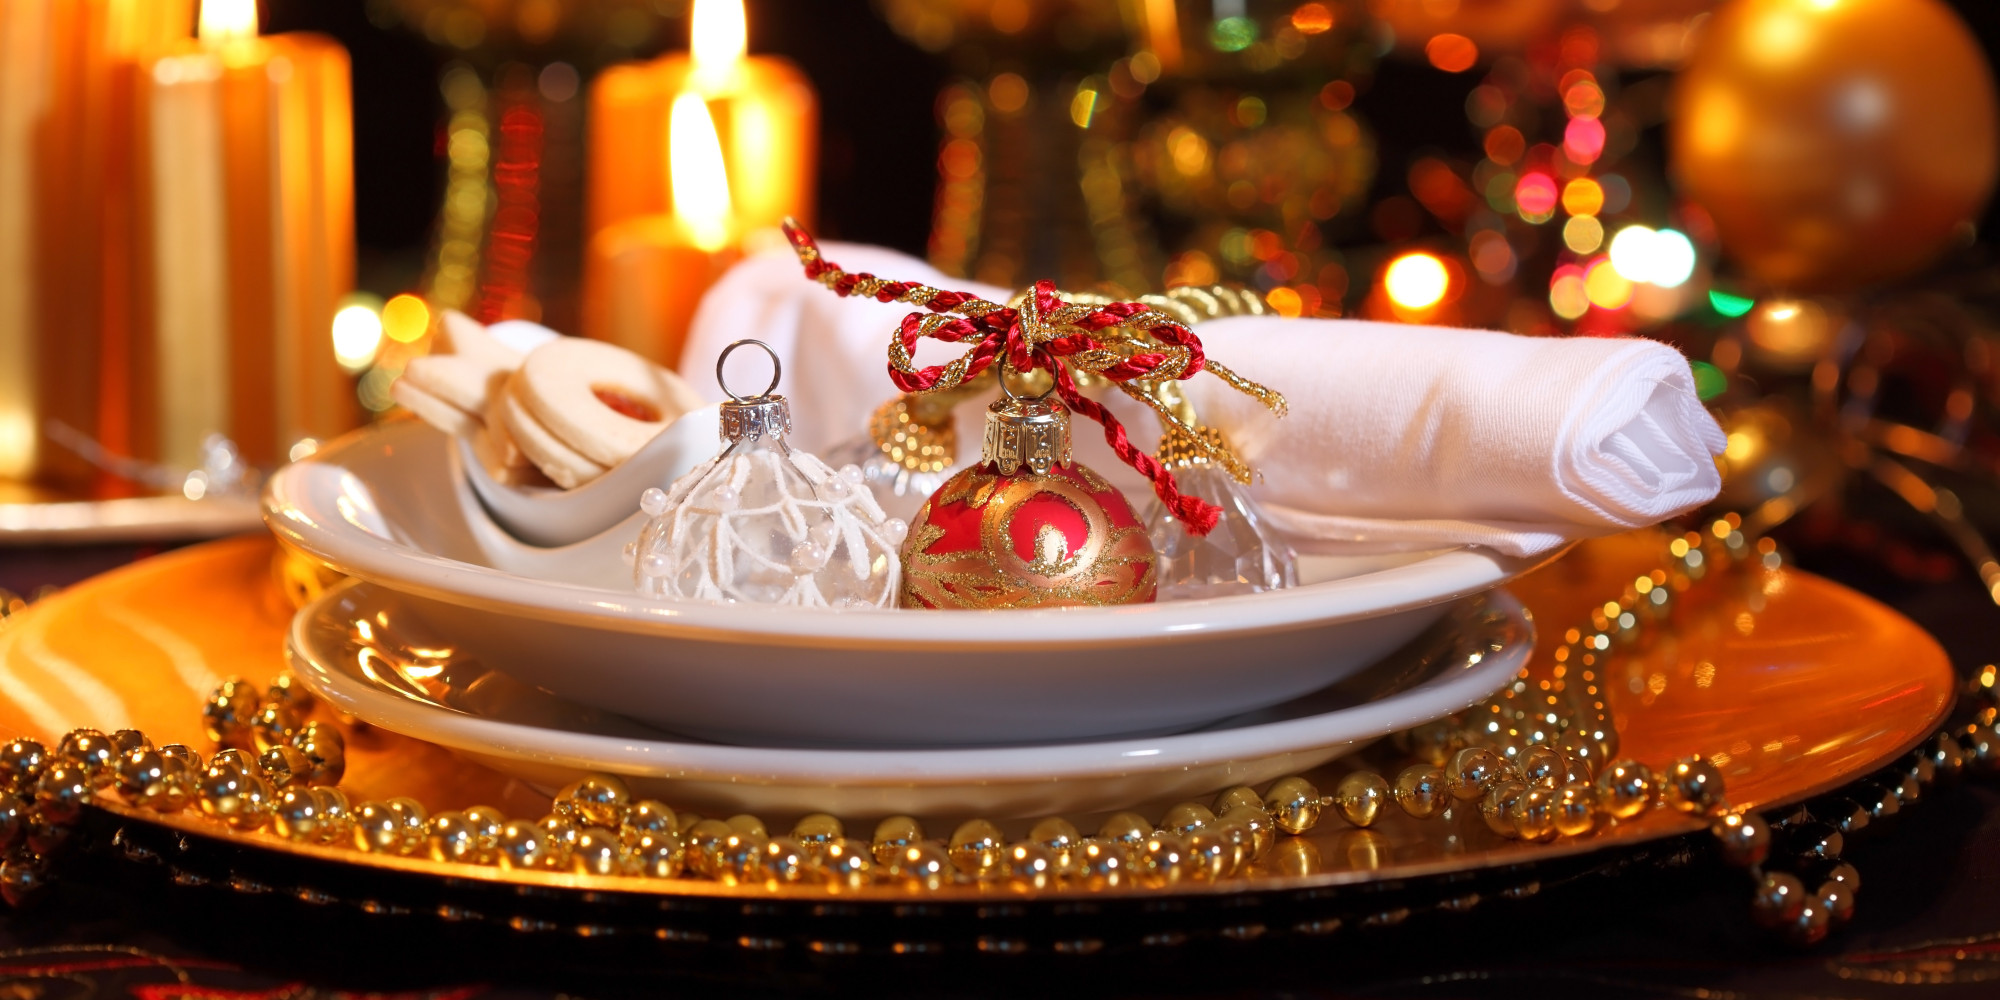 10 Best Christmas Tableware Ideas (PICTURES)